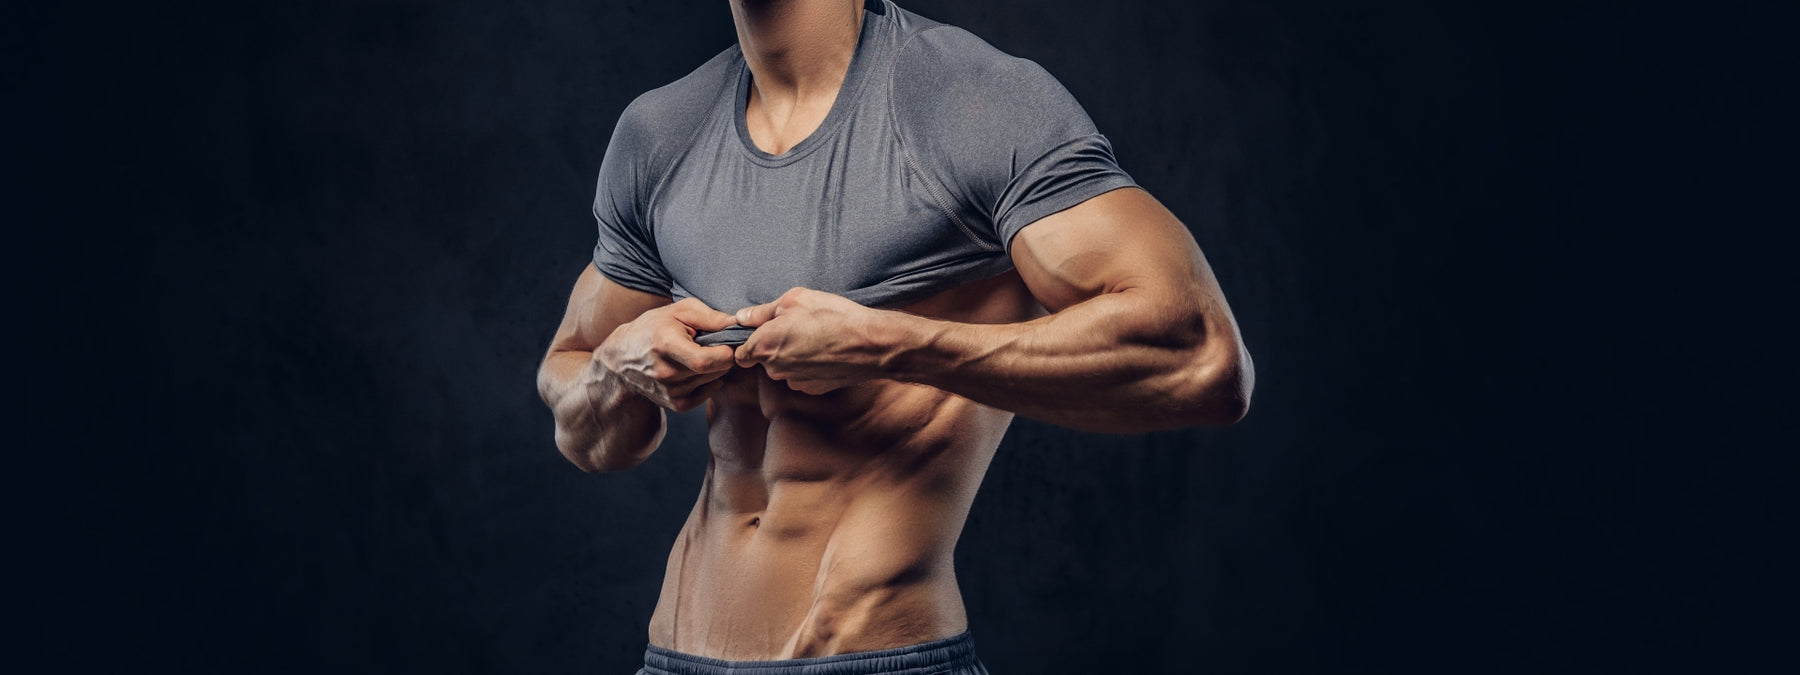 Can the Ectomorph Body Type Get Big?